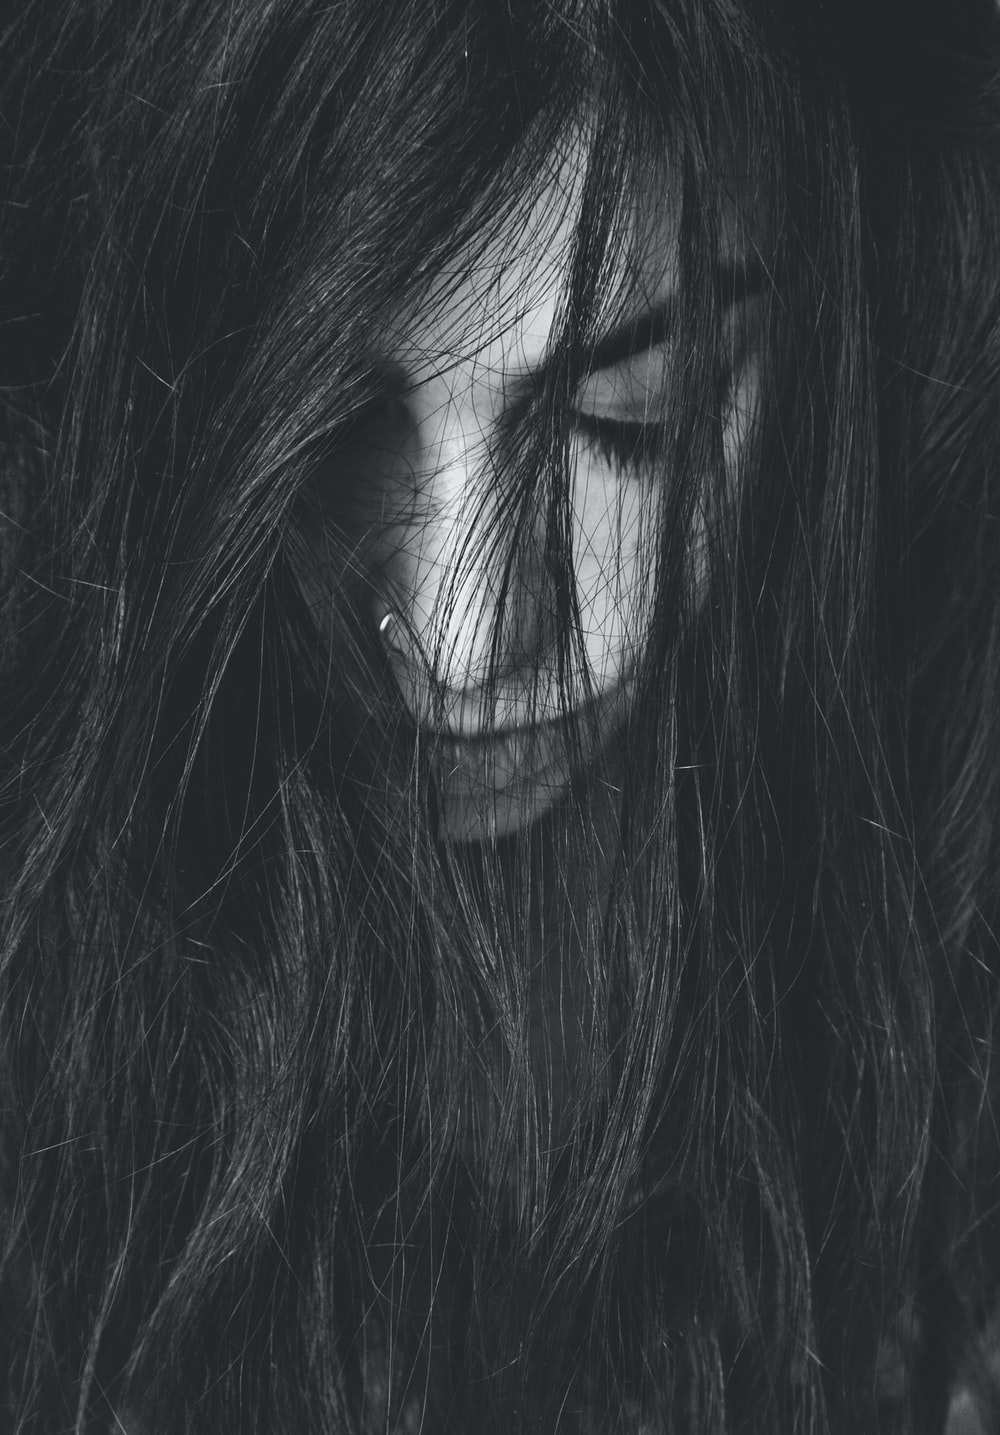 grayscale photography of woman looking down